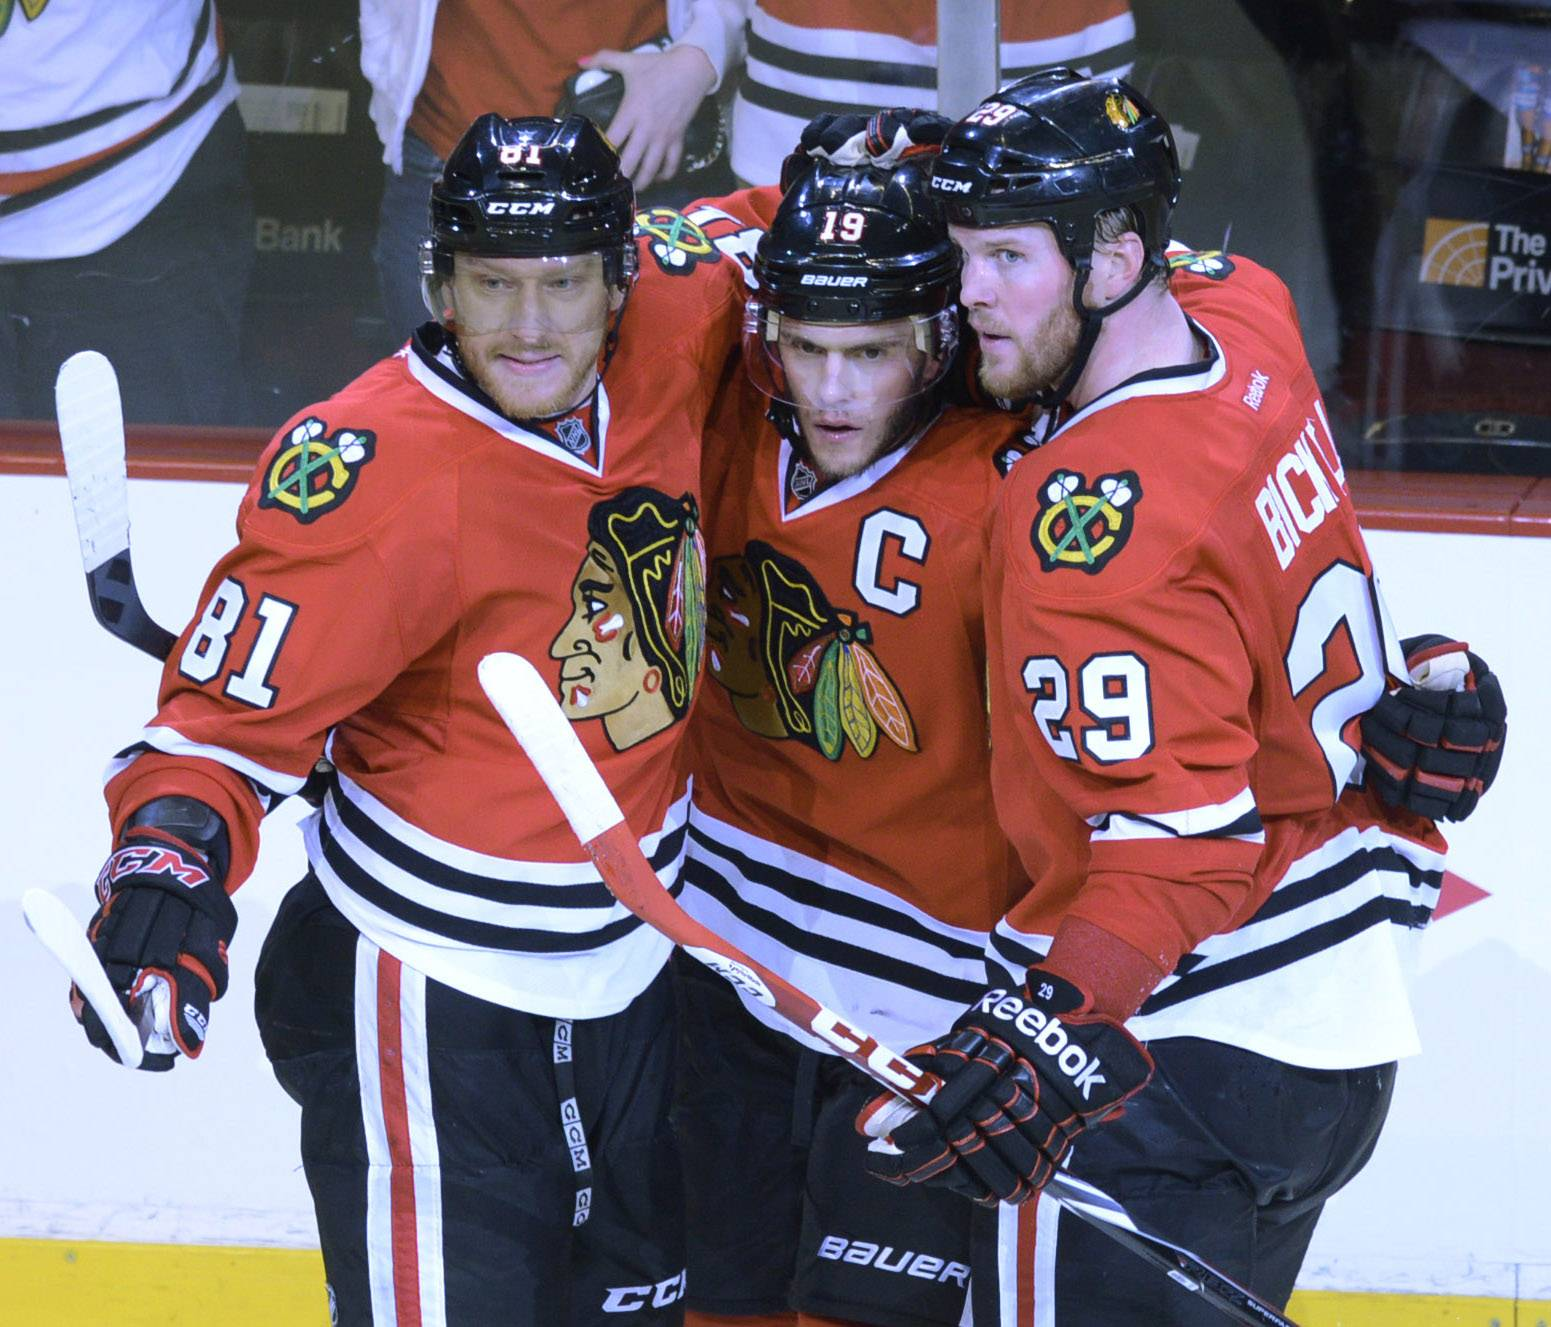 Jonathan Toews, middle, of the Chicago Blackhawks celebrates his third-period goal with teammates Marian Hossa, left, and Bryan Bickell during Sunday's game against the Los Angeles Kings at the United Center in Chicago.